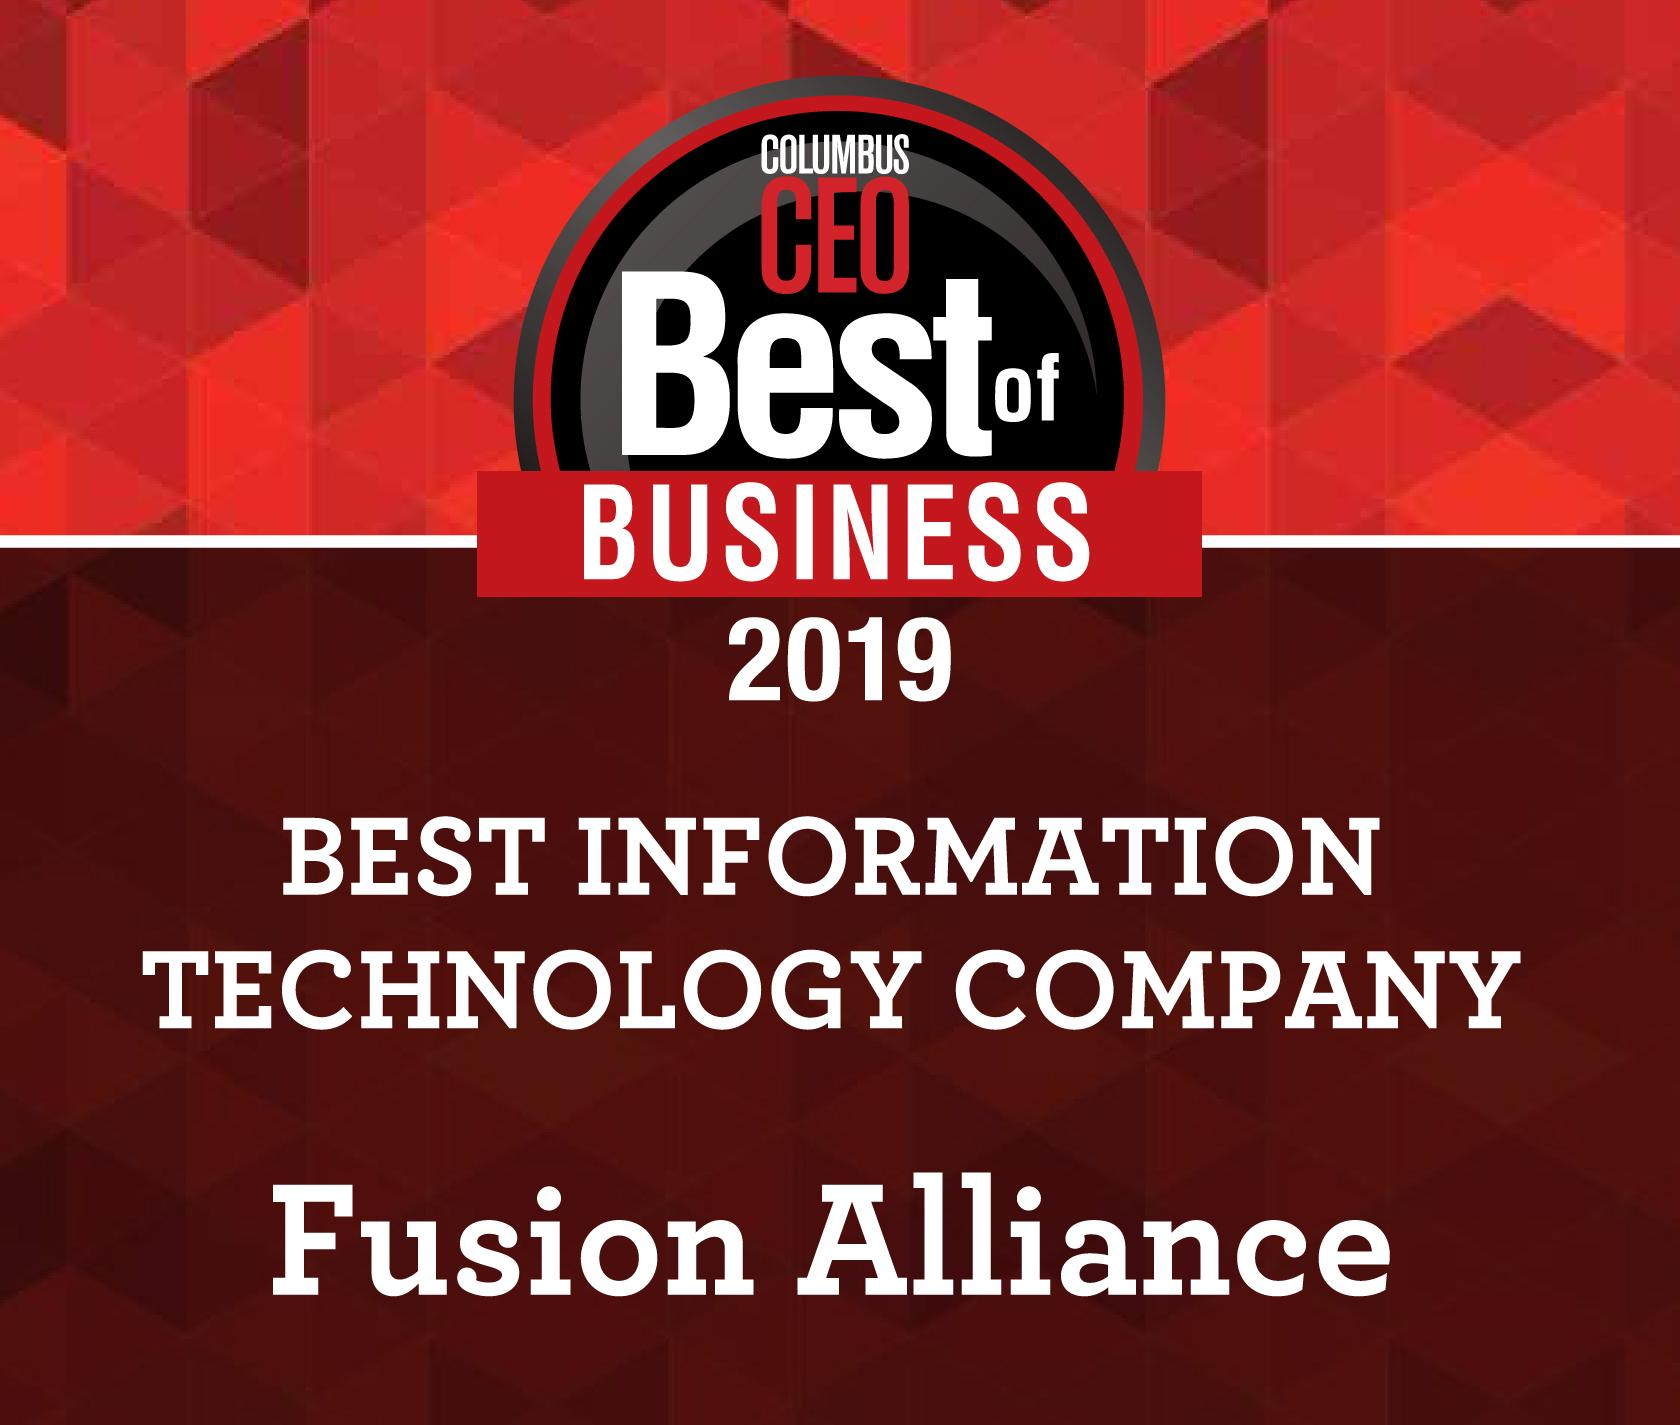 Columbus CEO's Best of Business | Best Information Technology Company